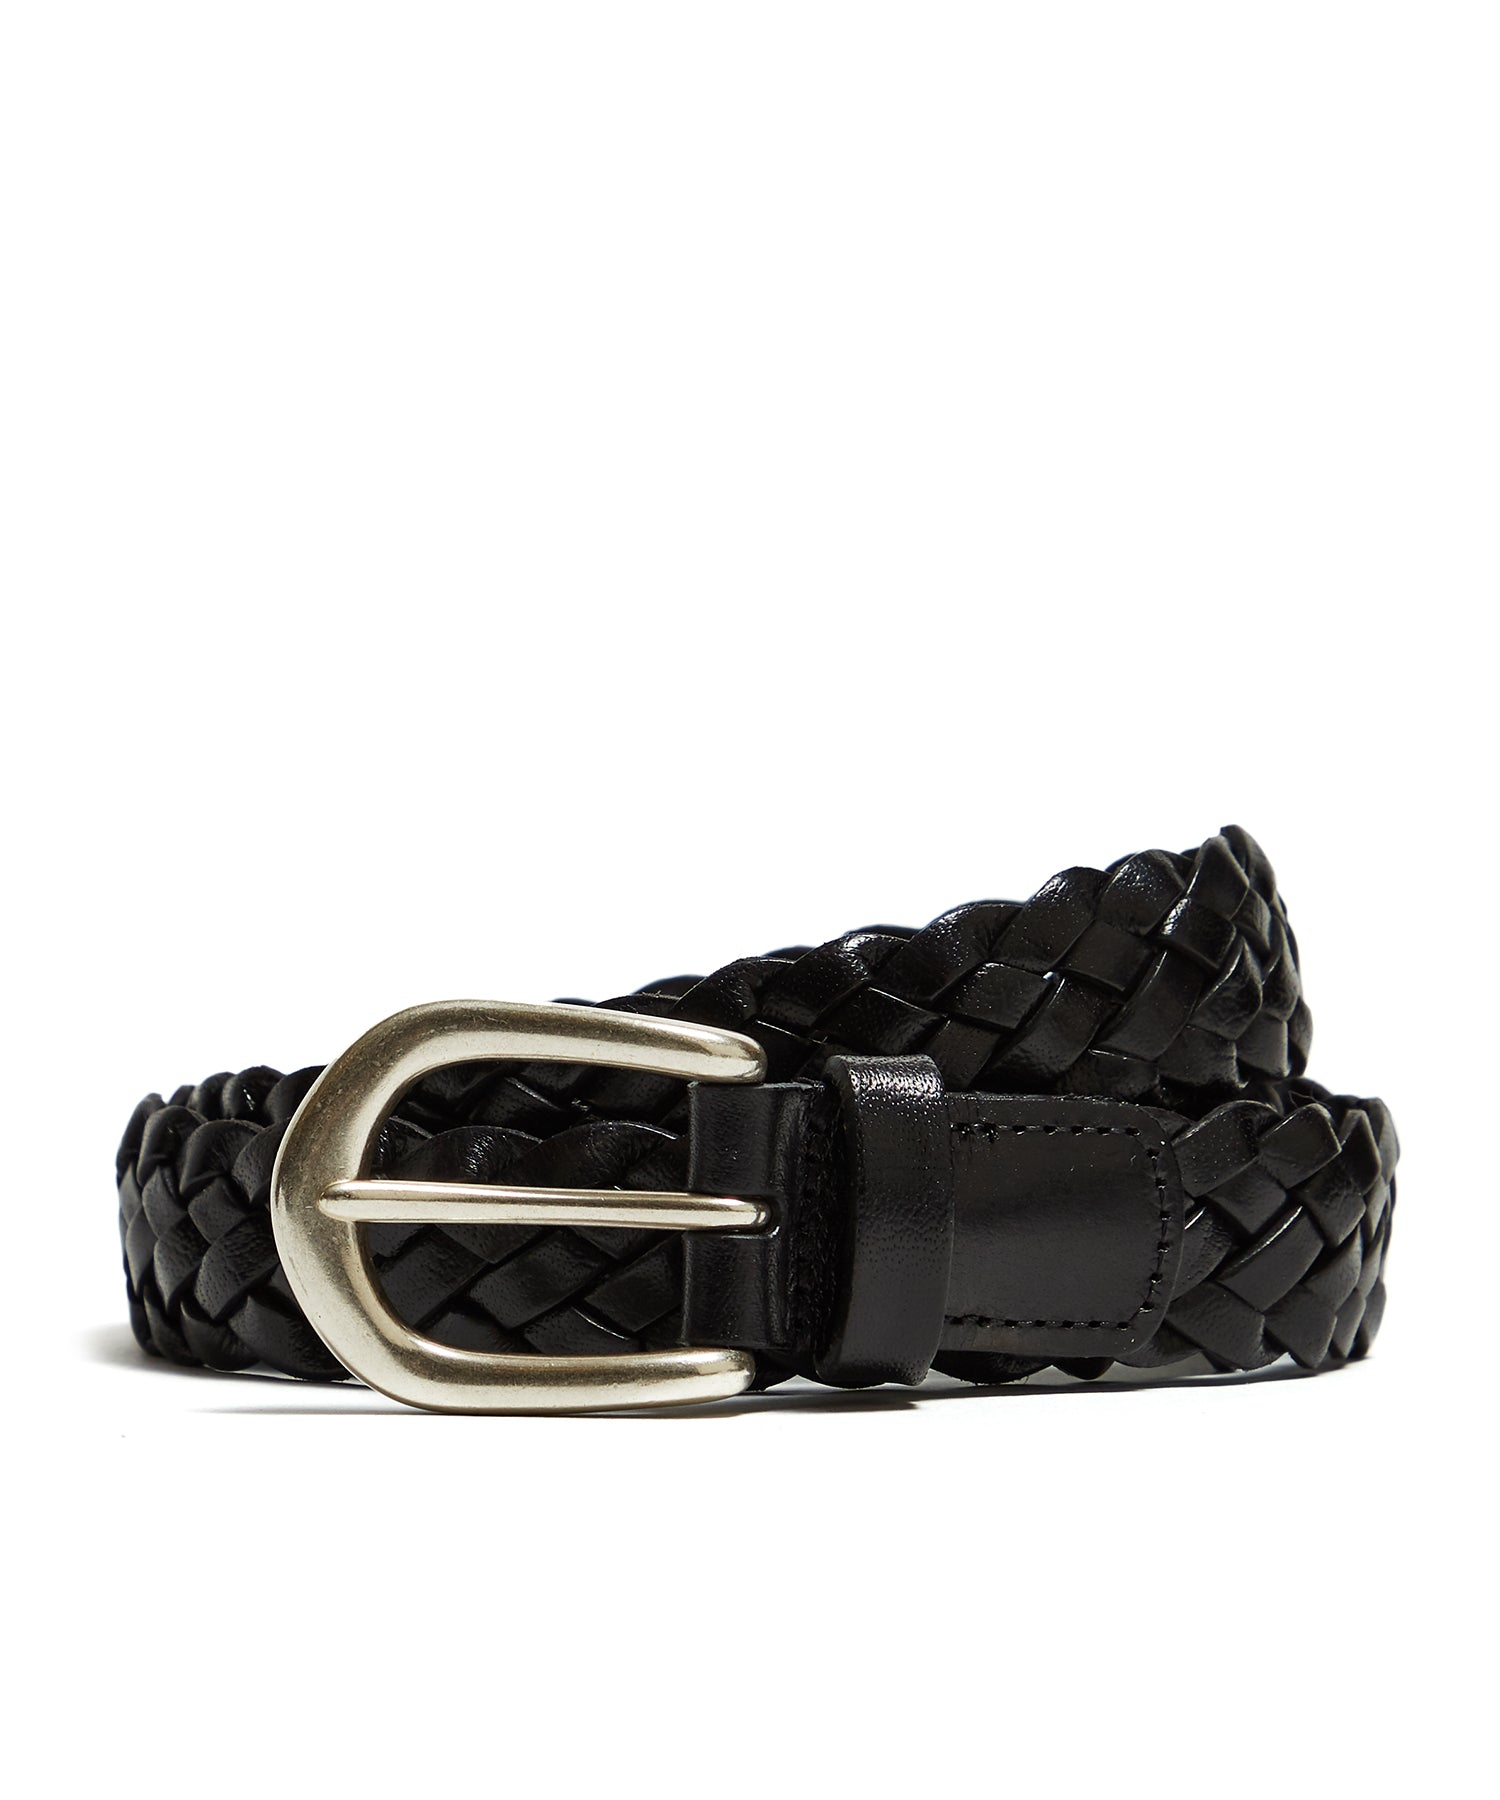 Anderson's Woven Leather in Black